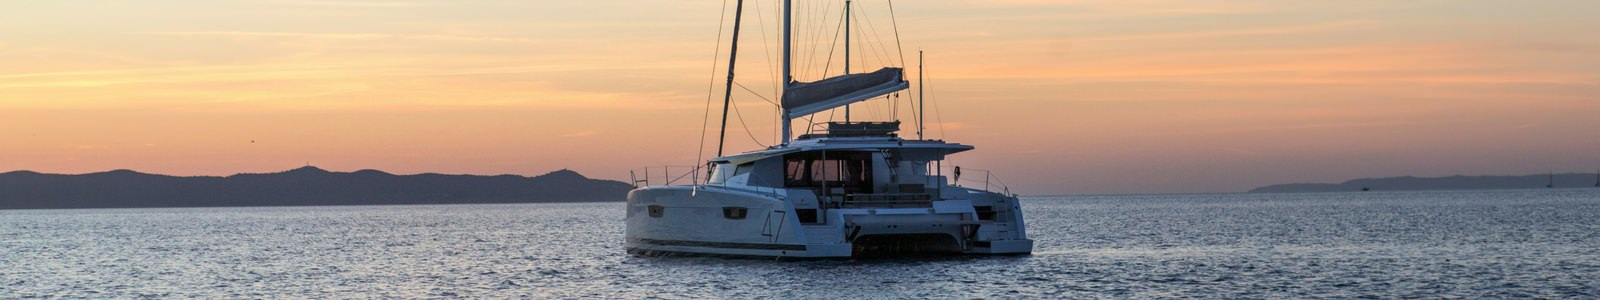 saona 47 luxury sailing charter cat catamaran seychelles boat yacht summer holidays modern fleet